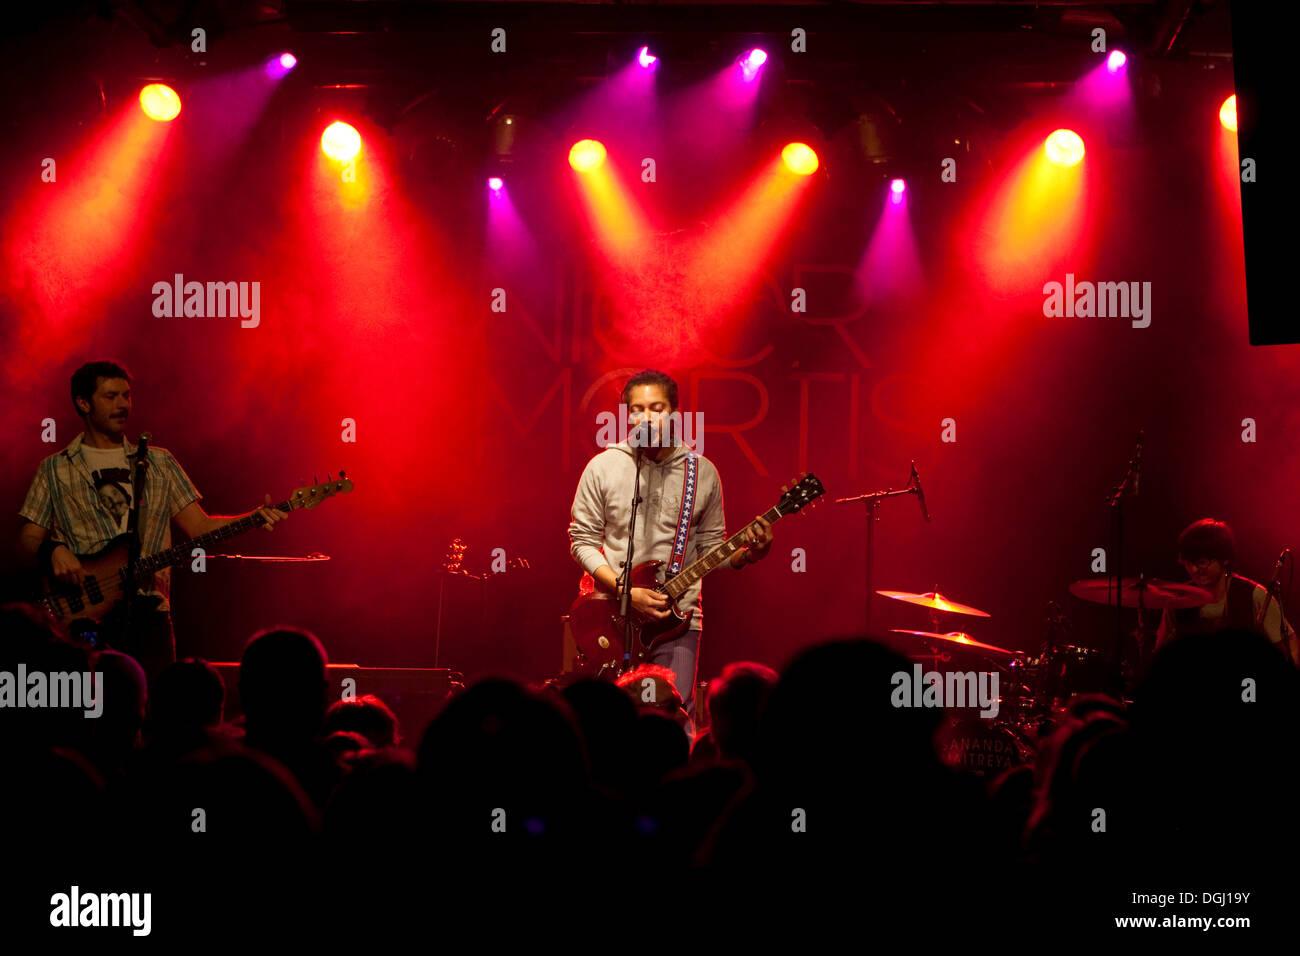 The U.S. singer and songwriter Sananda Maitreya, formerly known as Terence Trent D'Arby, live at the Schueuer venue, Stock Photo